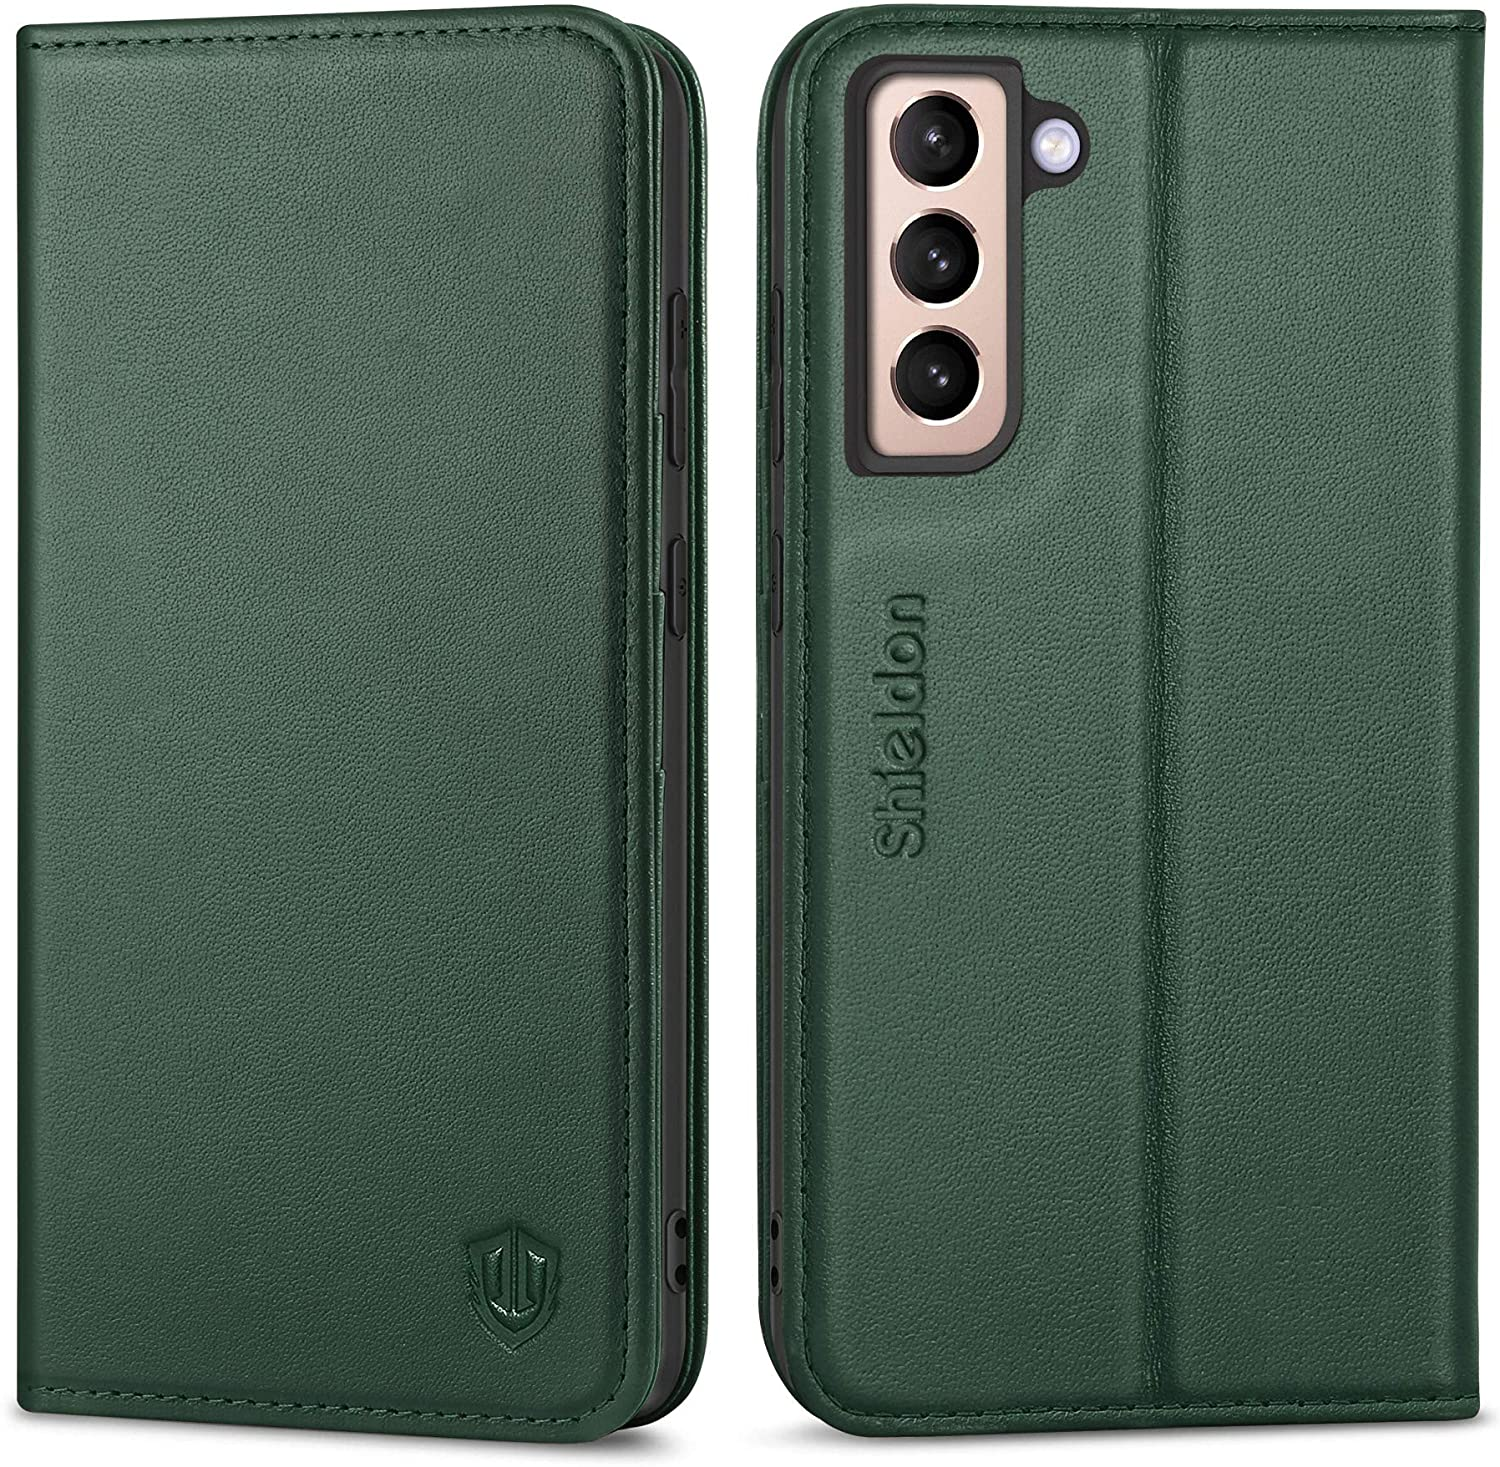 SHIELDON Galaxy S21 5G Case, Genuine Leather Wallet Case Folio Cover Stand Feature Magnetic Protective Case with RFID Blocking Card Slots + Side Pocket Compatible with Galaxy S21 5G - Midnight Green